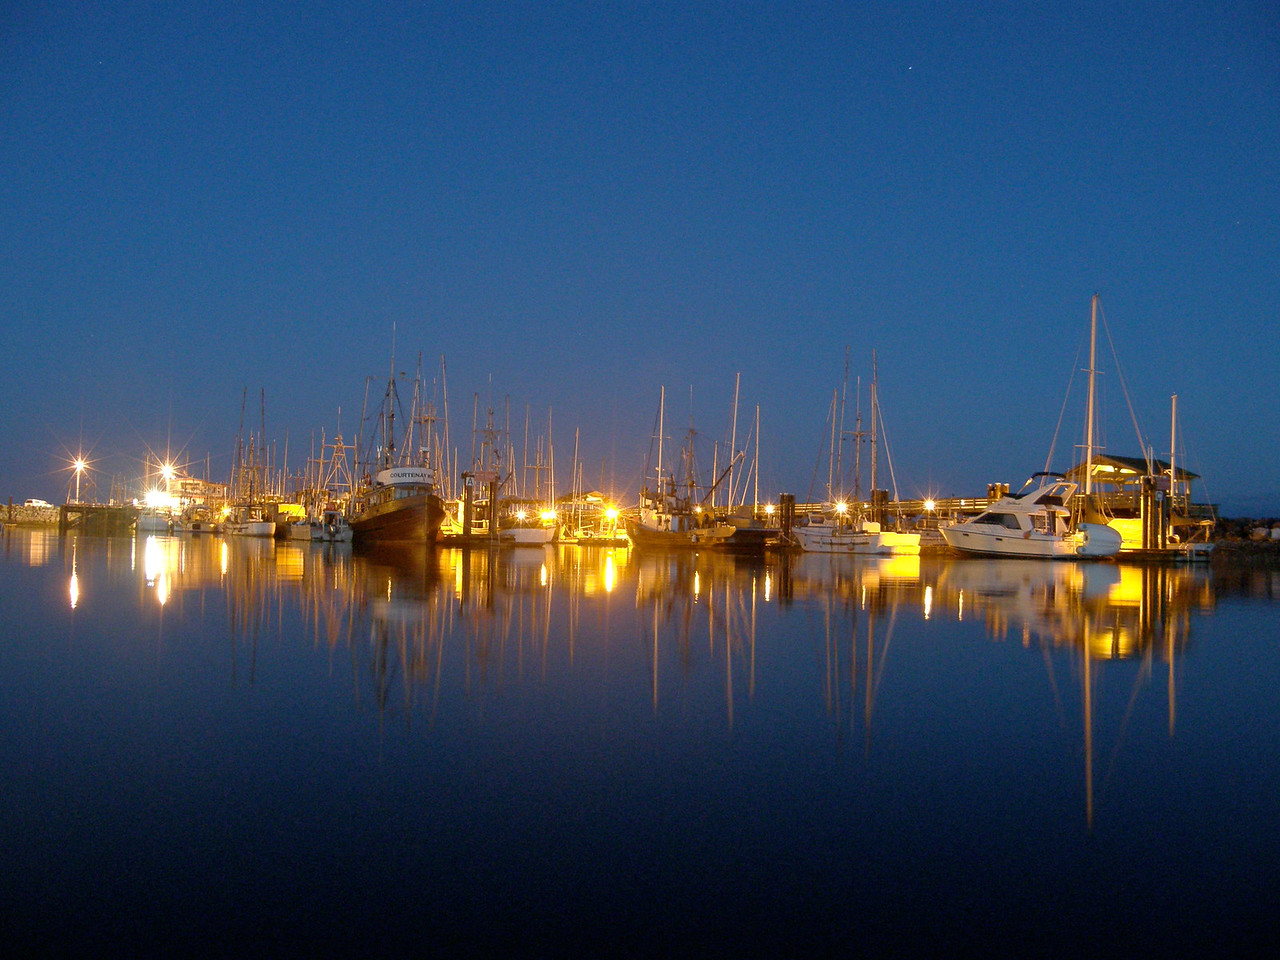 Tranquil British Columbian marina night scene